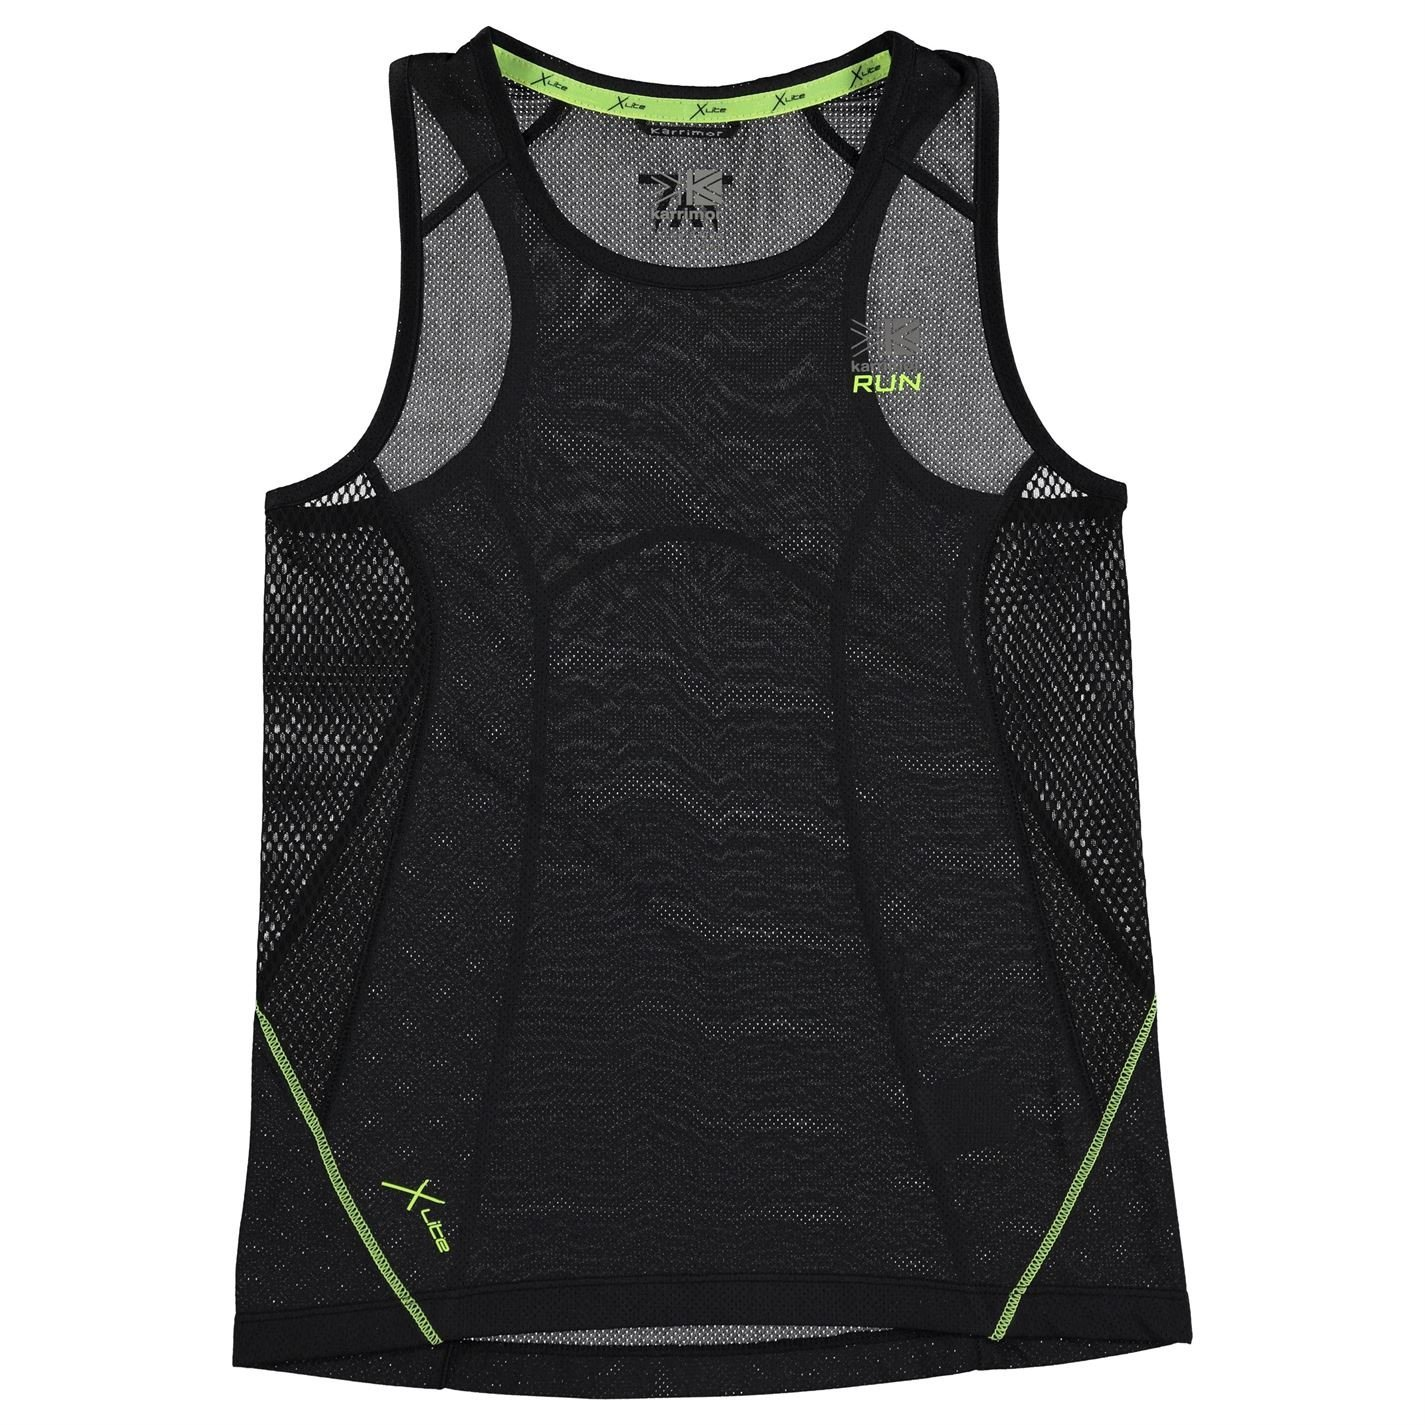 Karrimor Kids Xlite Vest Junior Boys Sleeveless Running Casual Sports Clothing